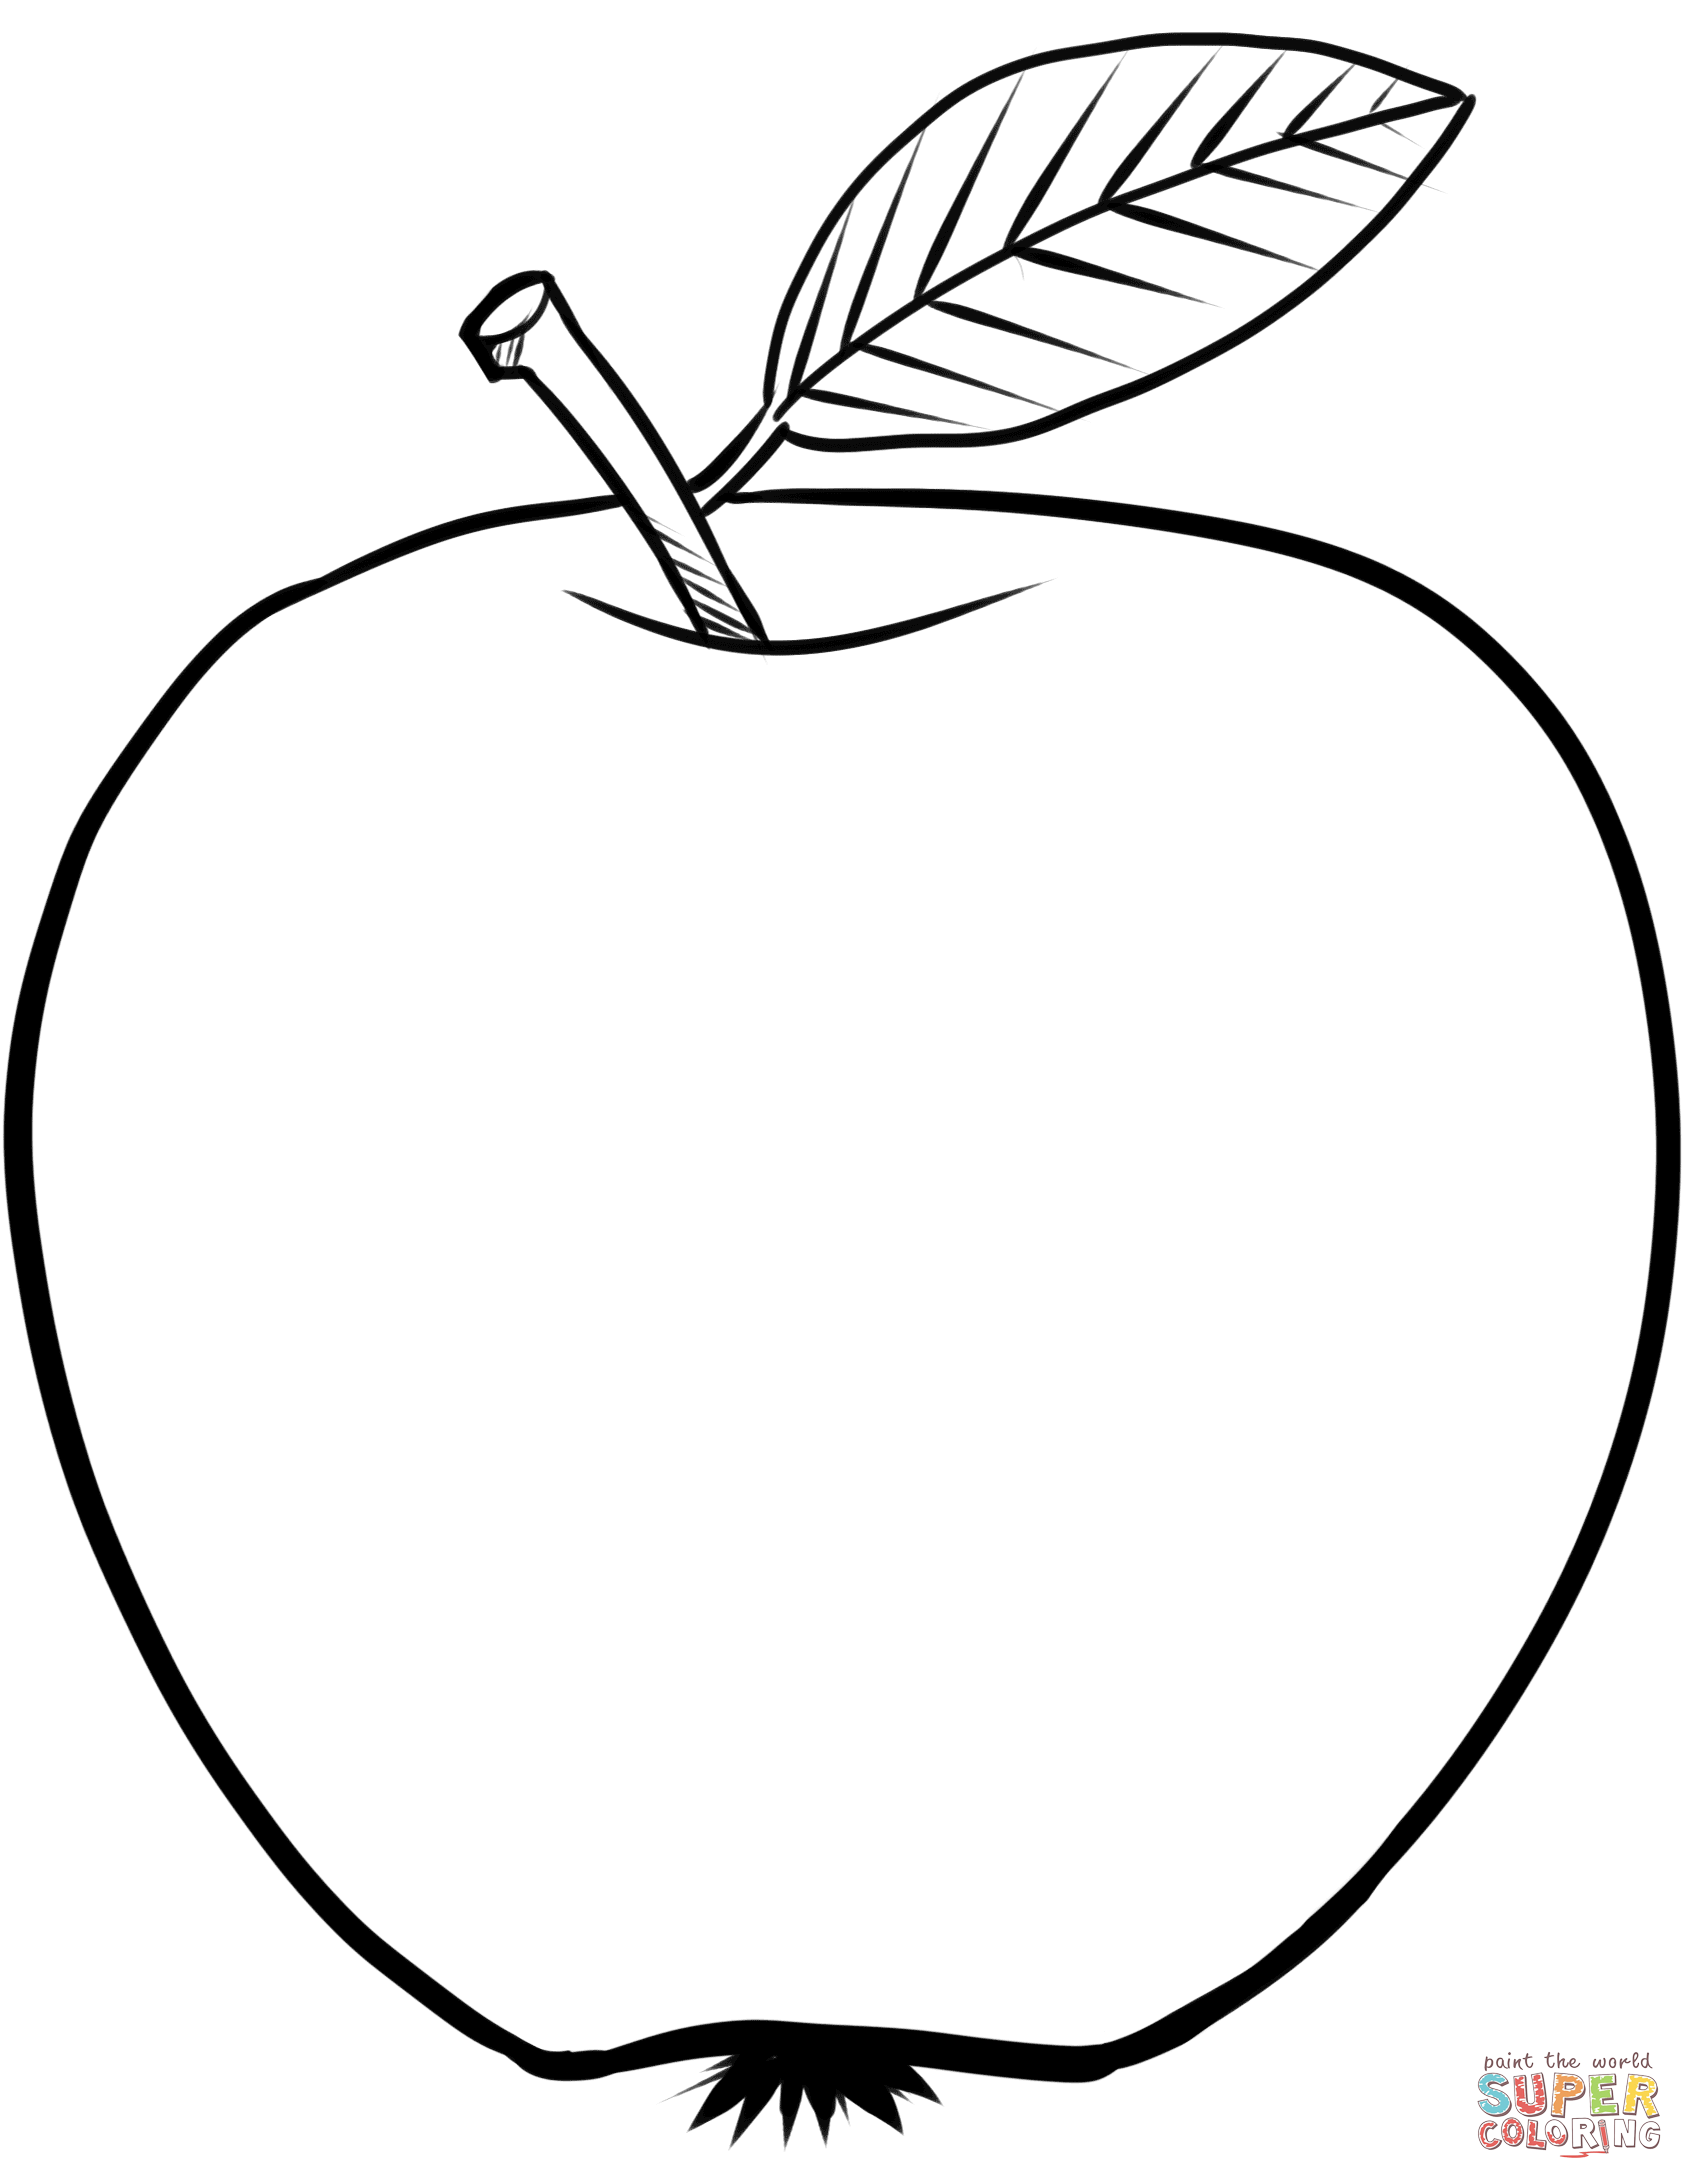 1685x2180 Apples Coloring Pages Free Coloring Pages